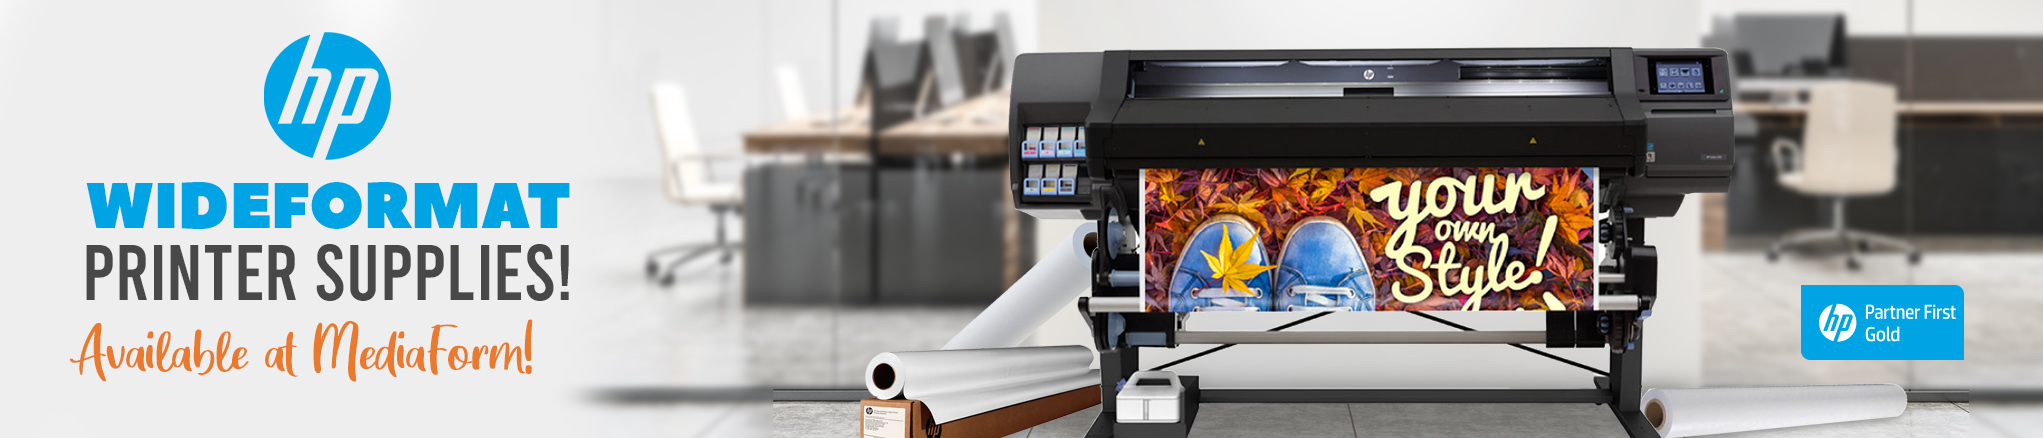 HP Wide Format Printer Supplies - Available at MediaForm